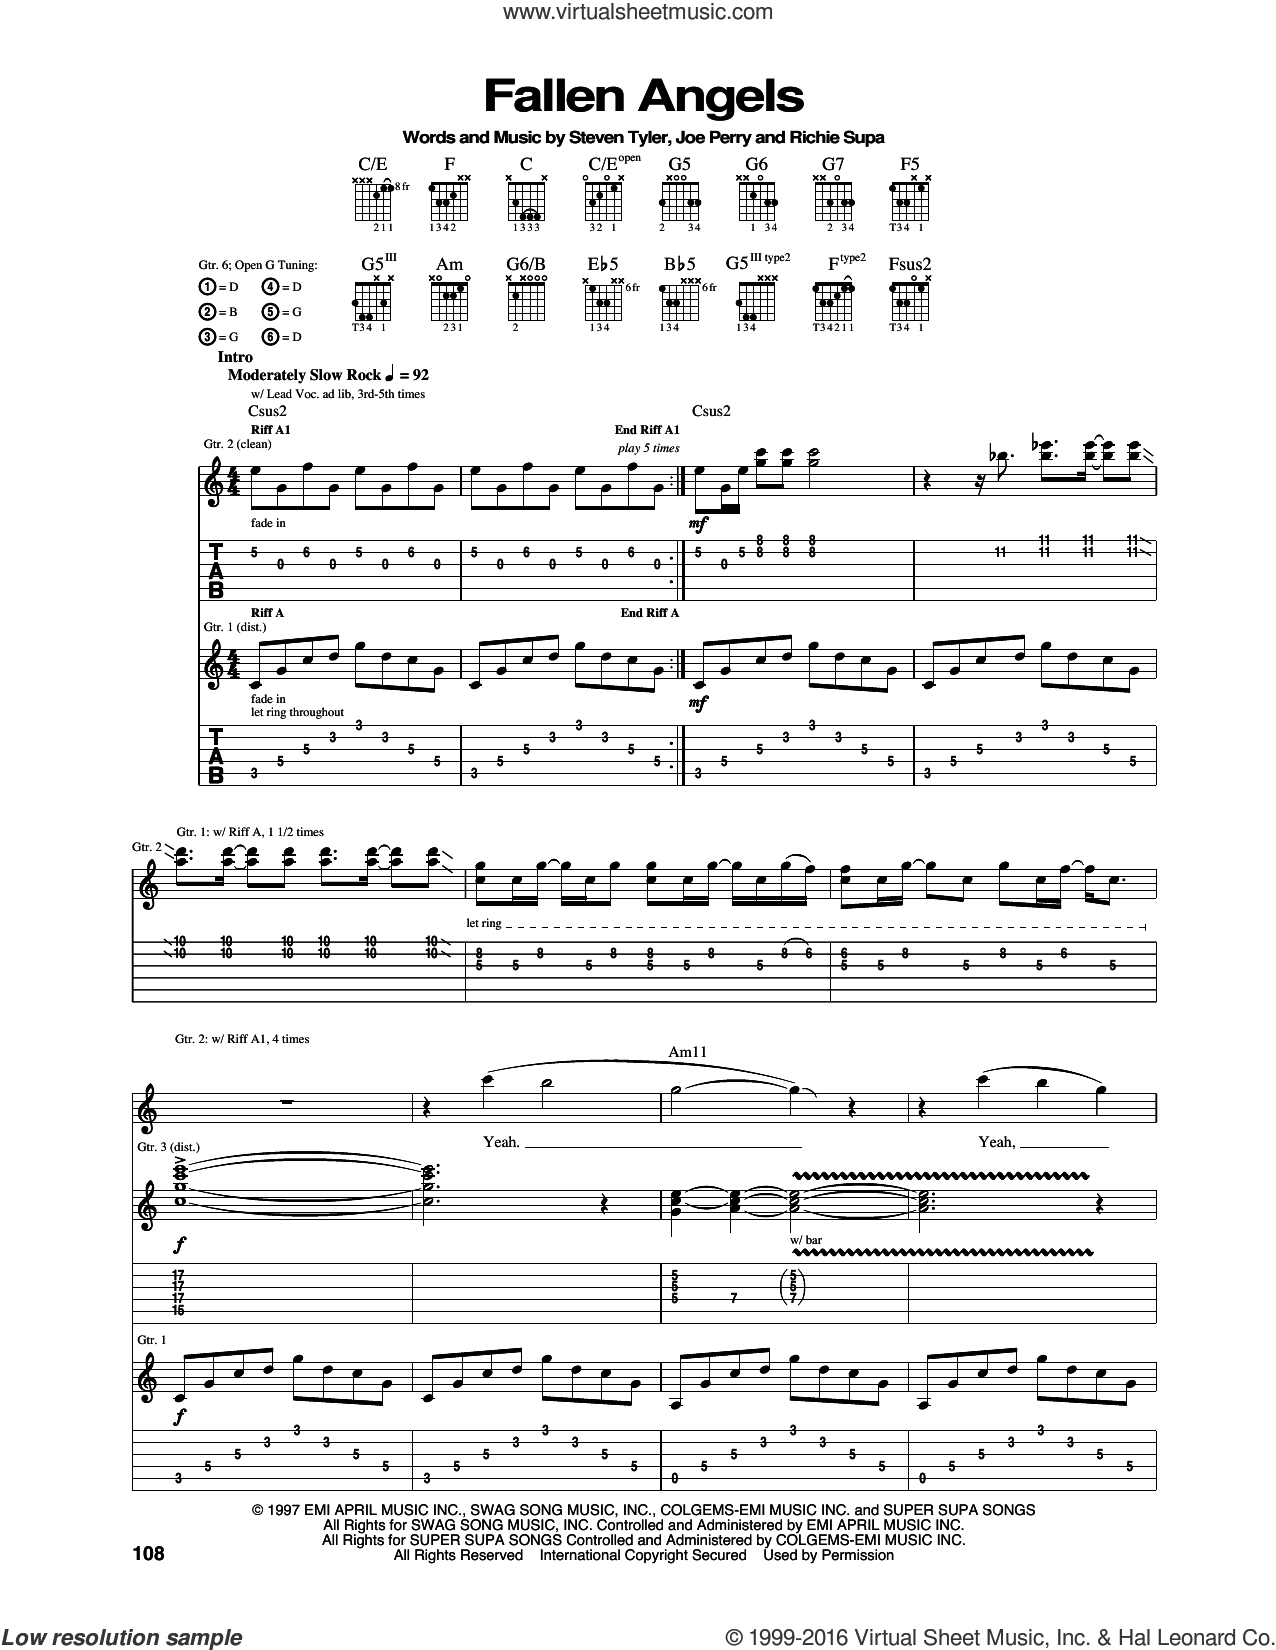 Fallen Angels sheet music for guitar (tablature) by Steven Tyler, Aerosmith, Joe Perry and Richie Supa. Score Image Preview.